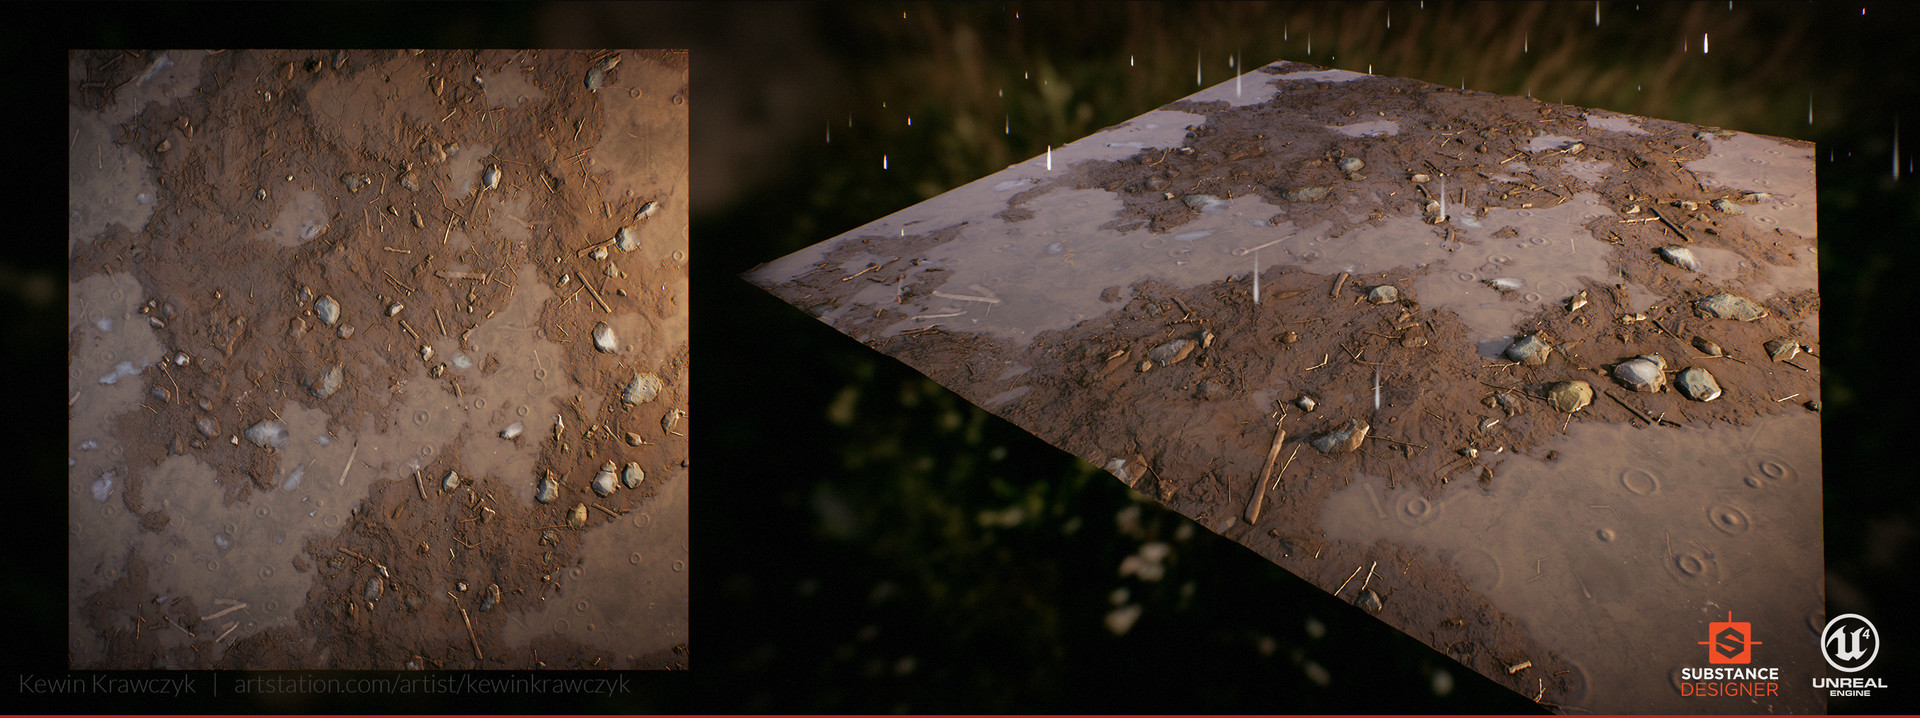 ArtStation - PBR Procedural Mud Ground , Kewin Krawczyk